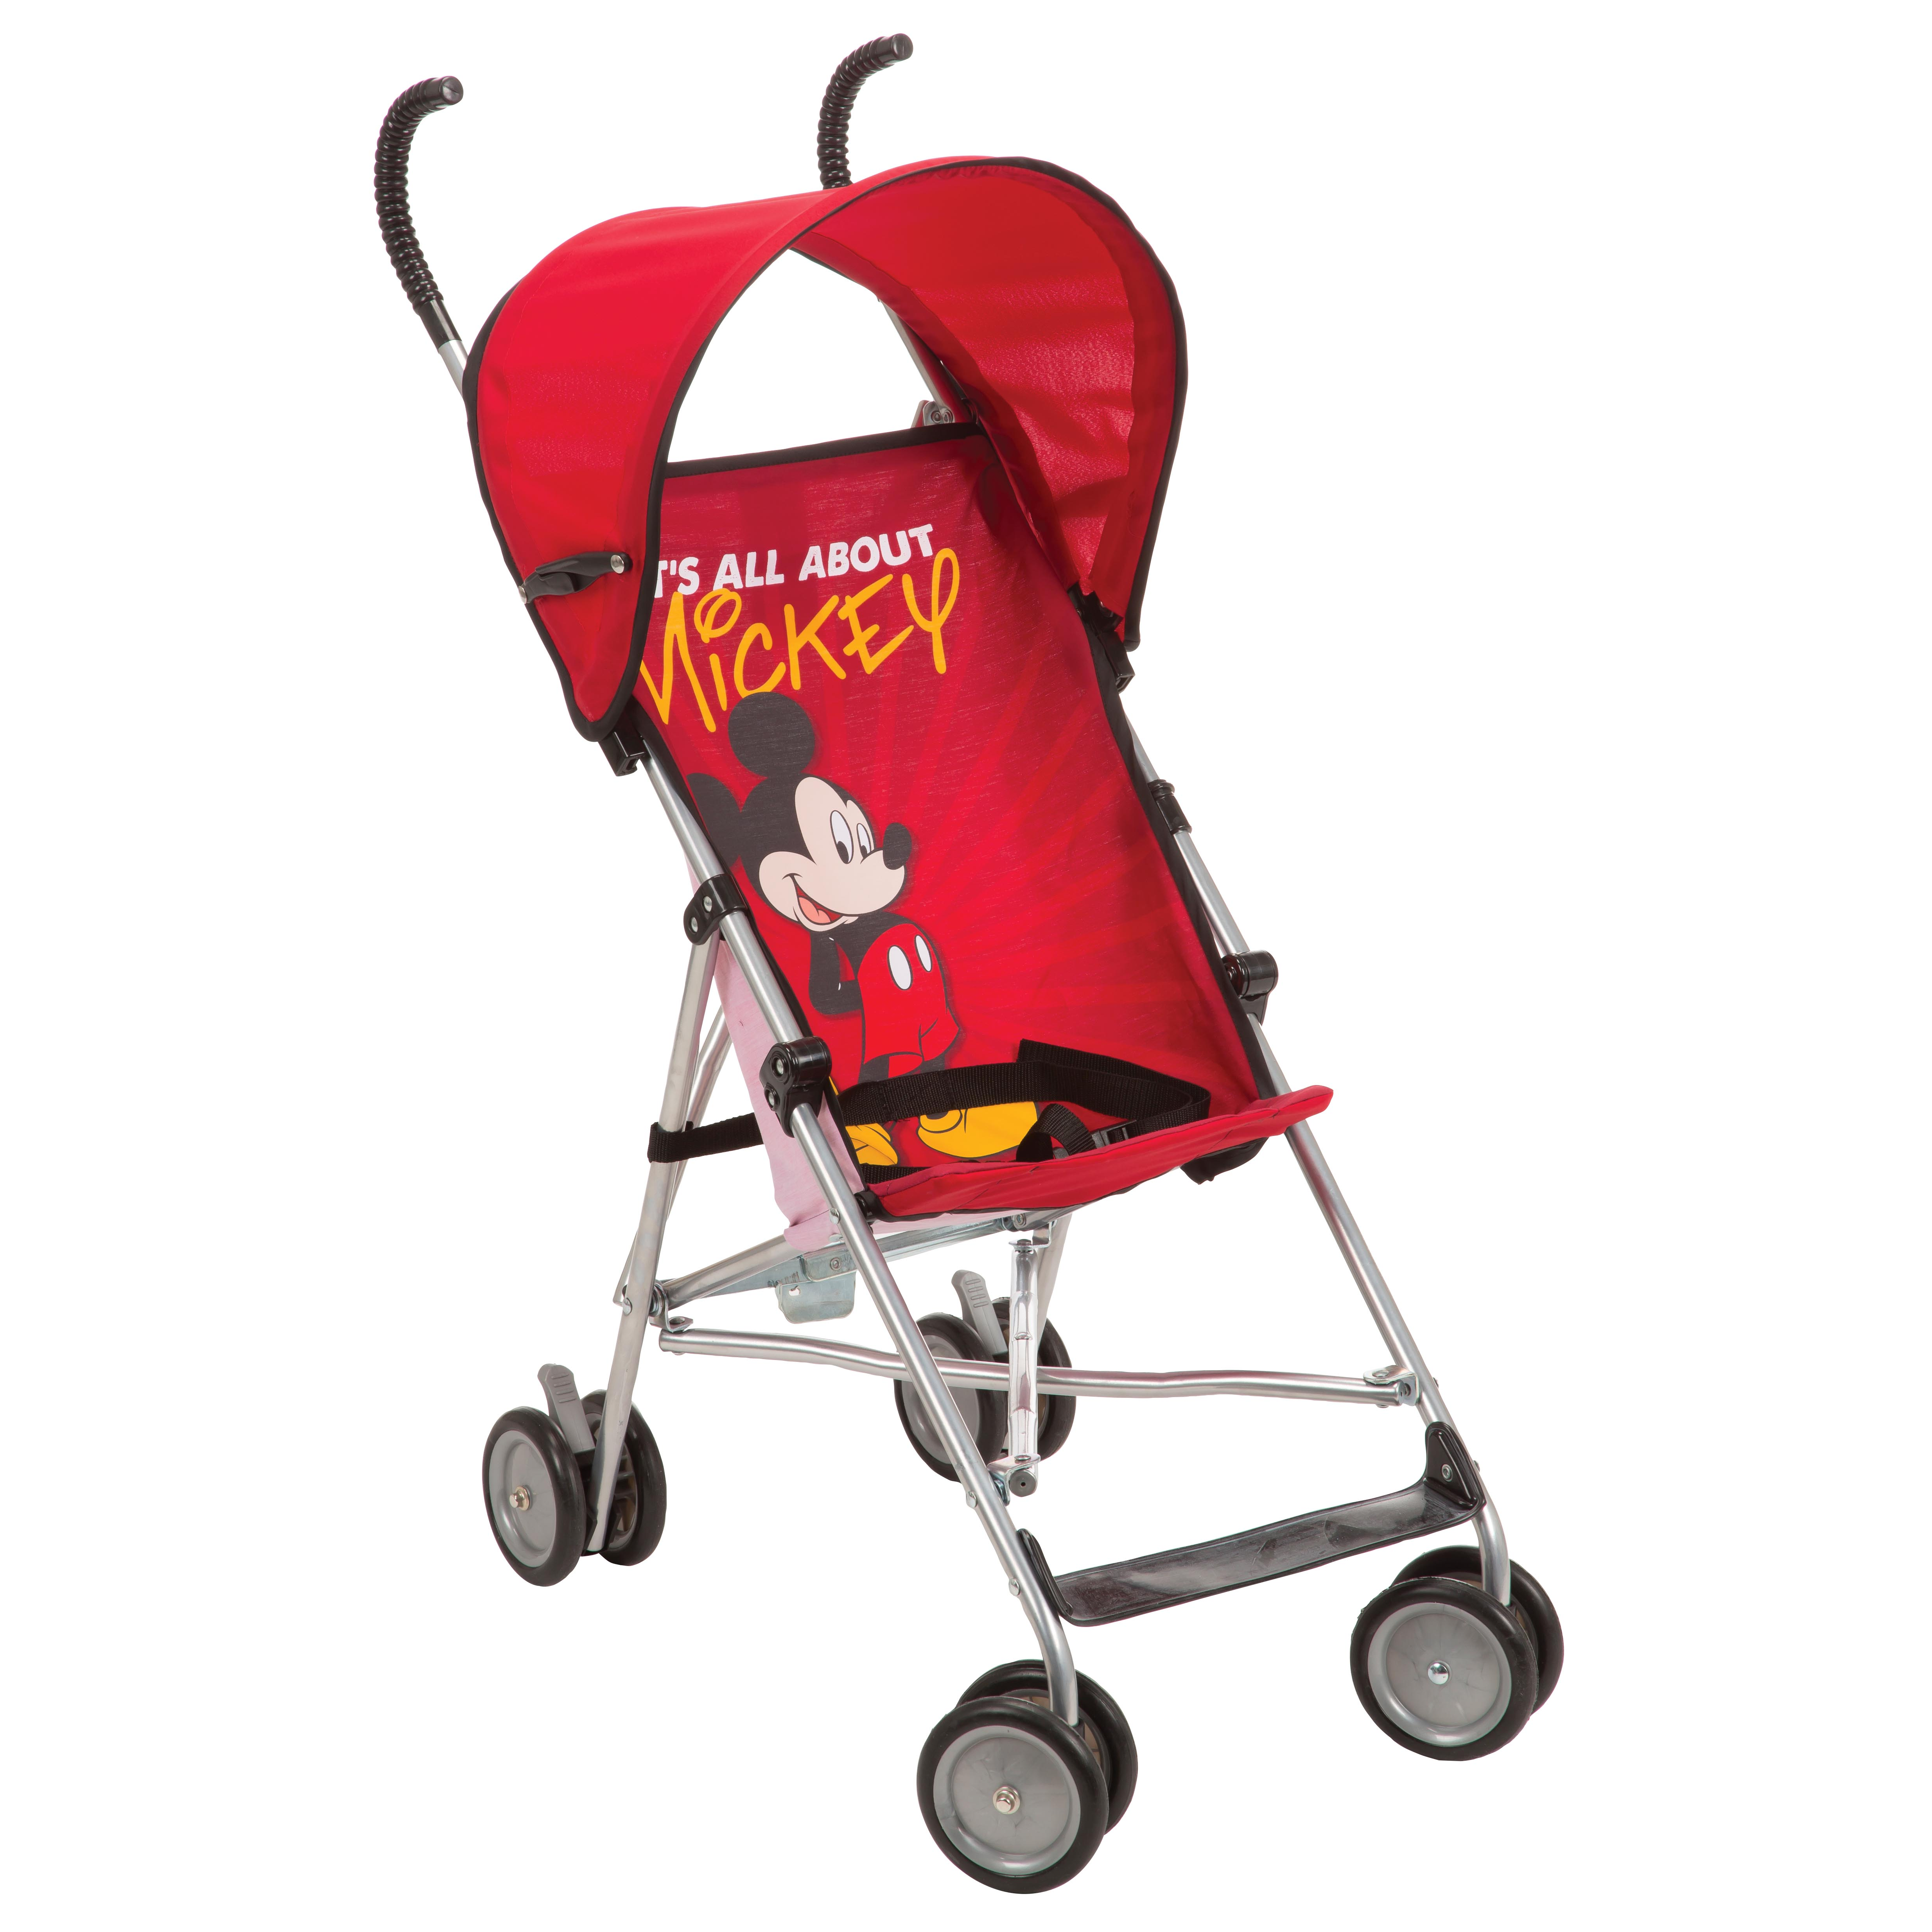 Disney Baby Mickey Mouse Umbrella Stroller with Canopy and Three-Point Harness, Foldable Design